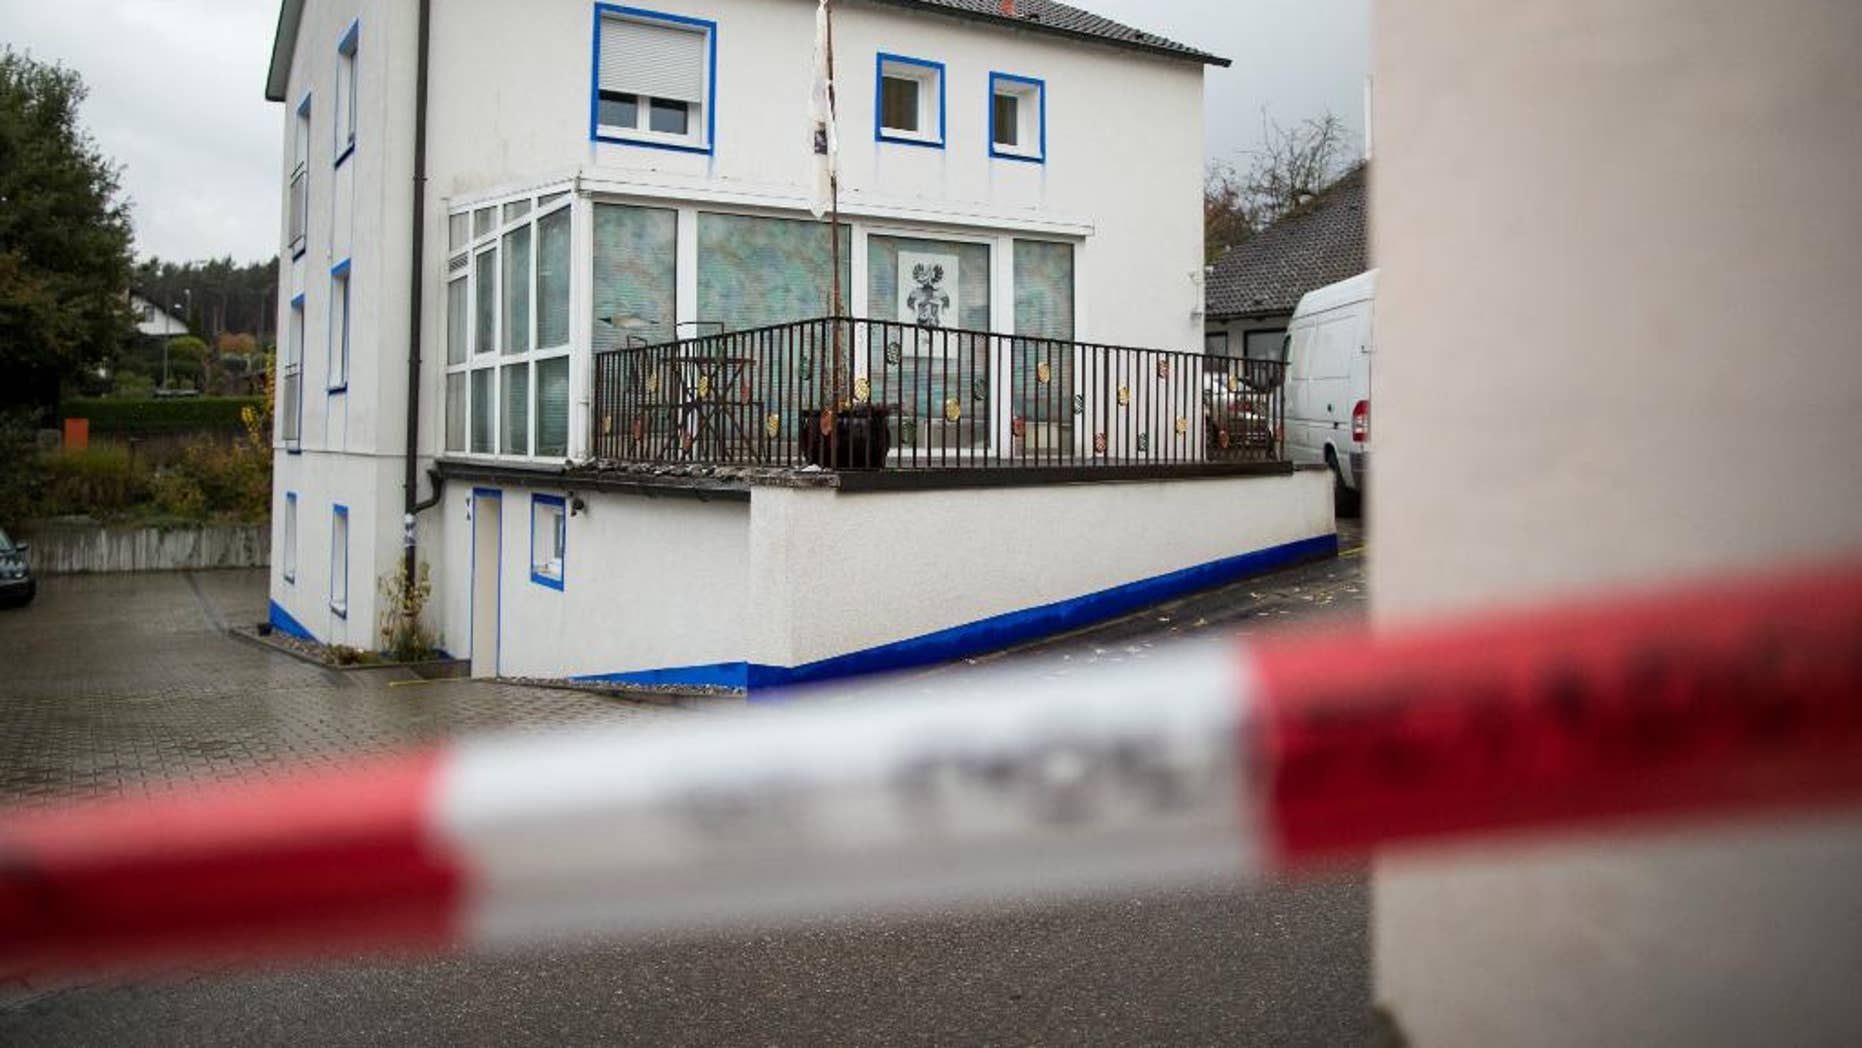 The house in which a 49-year-old anti-government extremist fired at four policemen during a raid on the Wednesday is pictured in Georgensgmuend, Germany, Thursday, Oct. 20, 2016. A 32-year-old police officer died early Thursday, a day after being shot by by the extremist who had hoarded dozens of weapons at his home, officials said. (Daniel Karmann/dpa via AP)